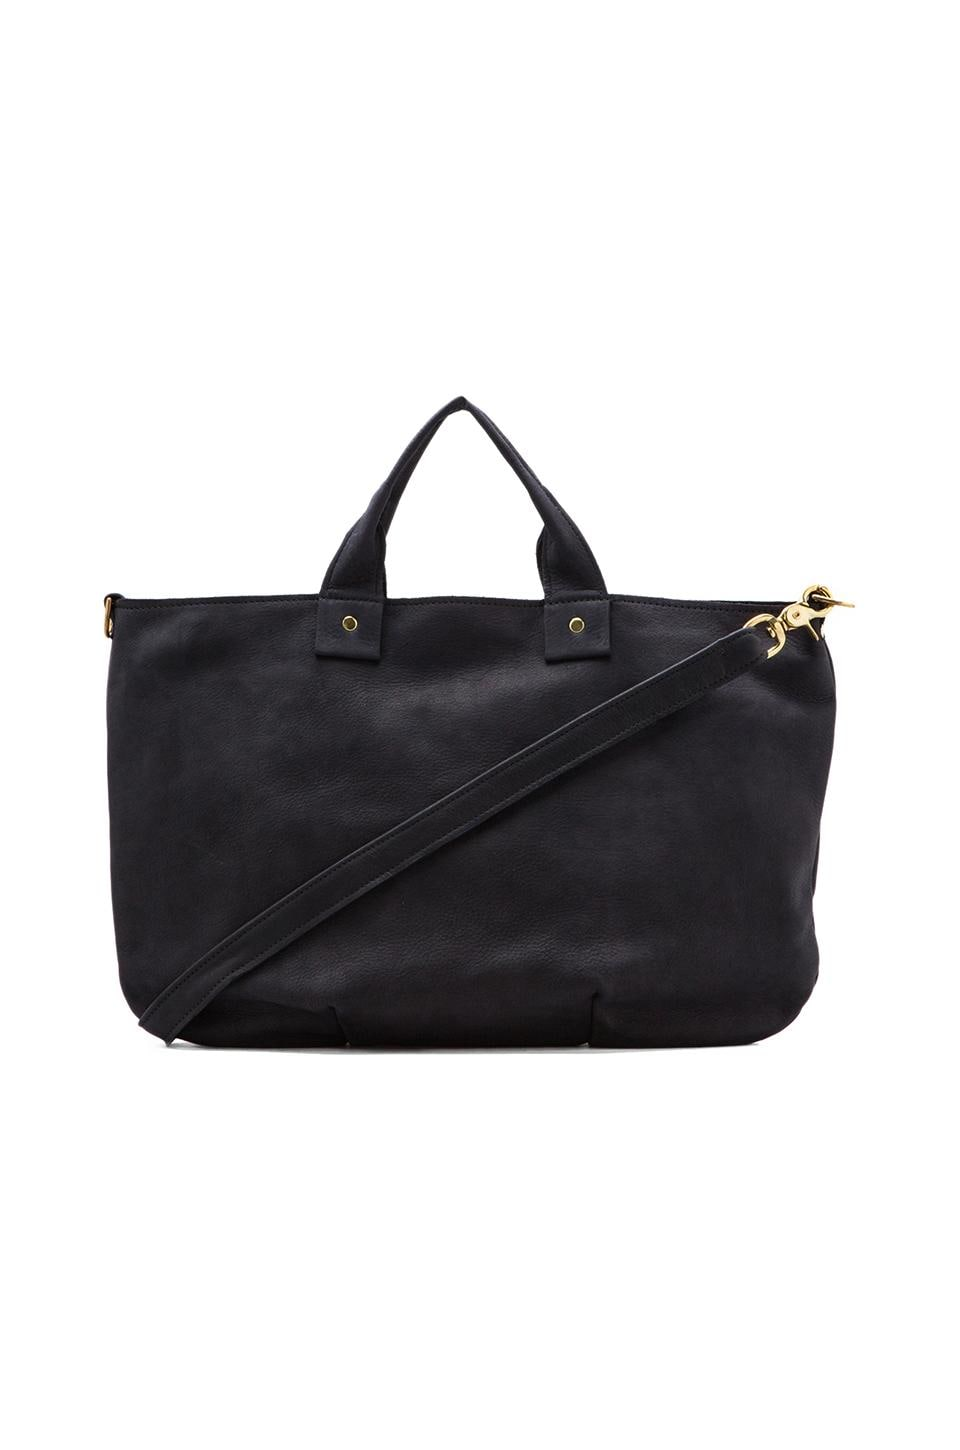 Clare V. Messenger in Navy